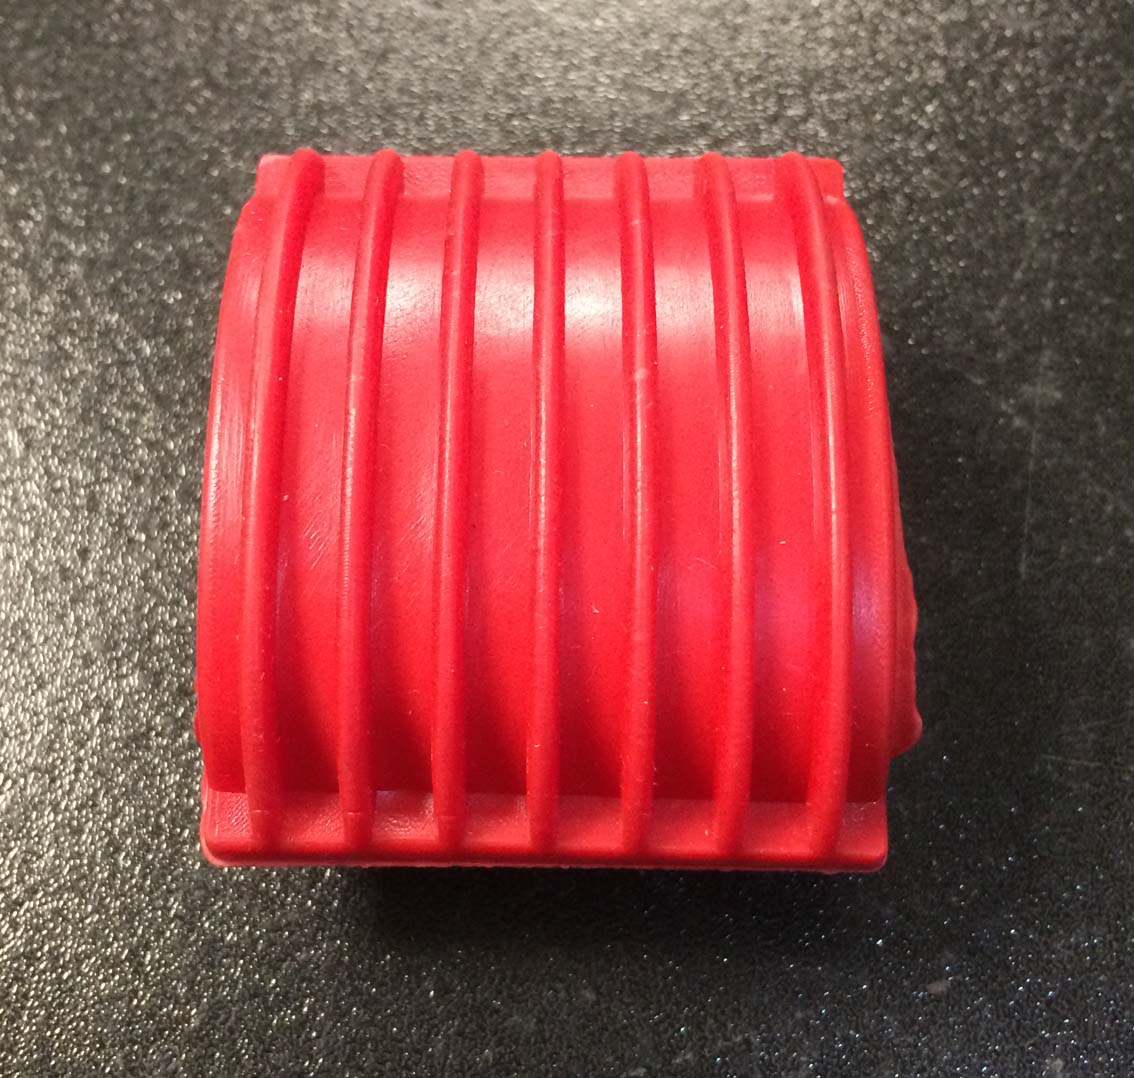 Kick start lever flat rubber red for Vespa PX